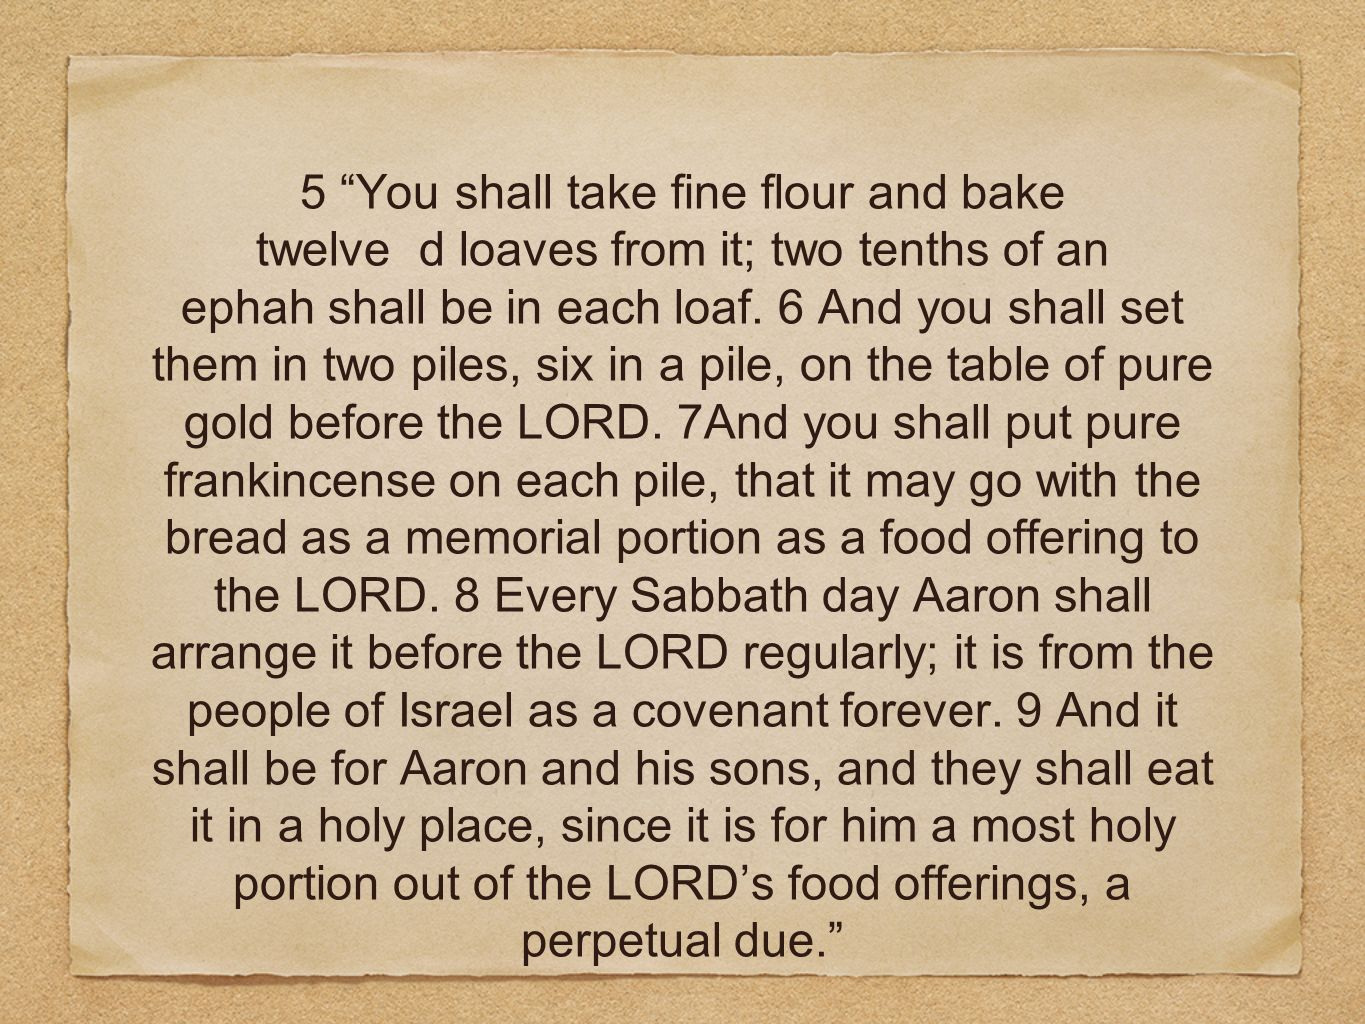 5 You shall take fine flour and bake twelve d loaves from it; two tenths of an ephah shall be in each loaf.